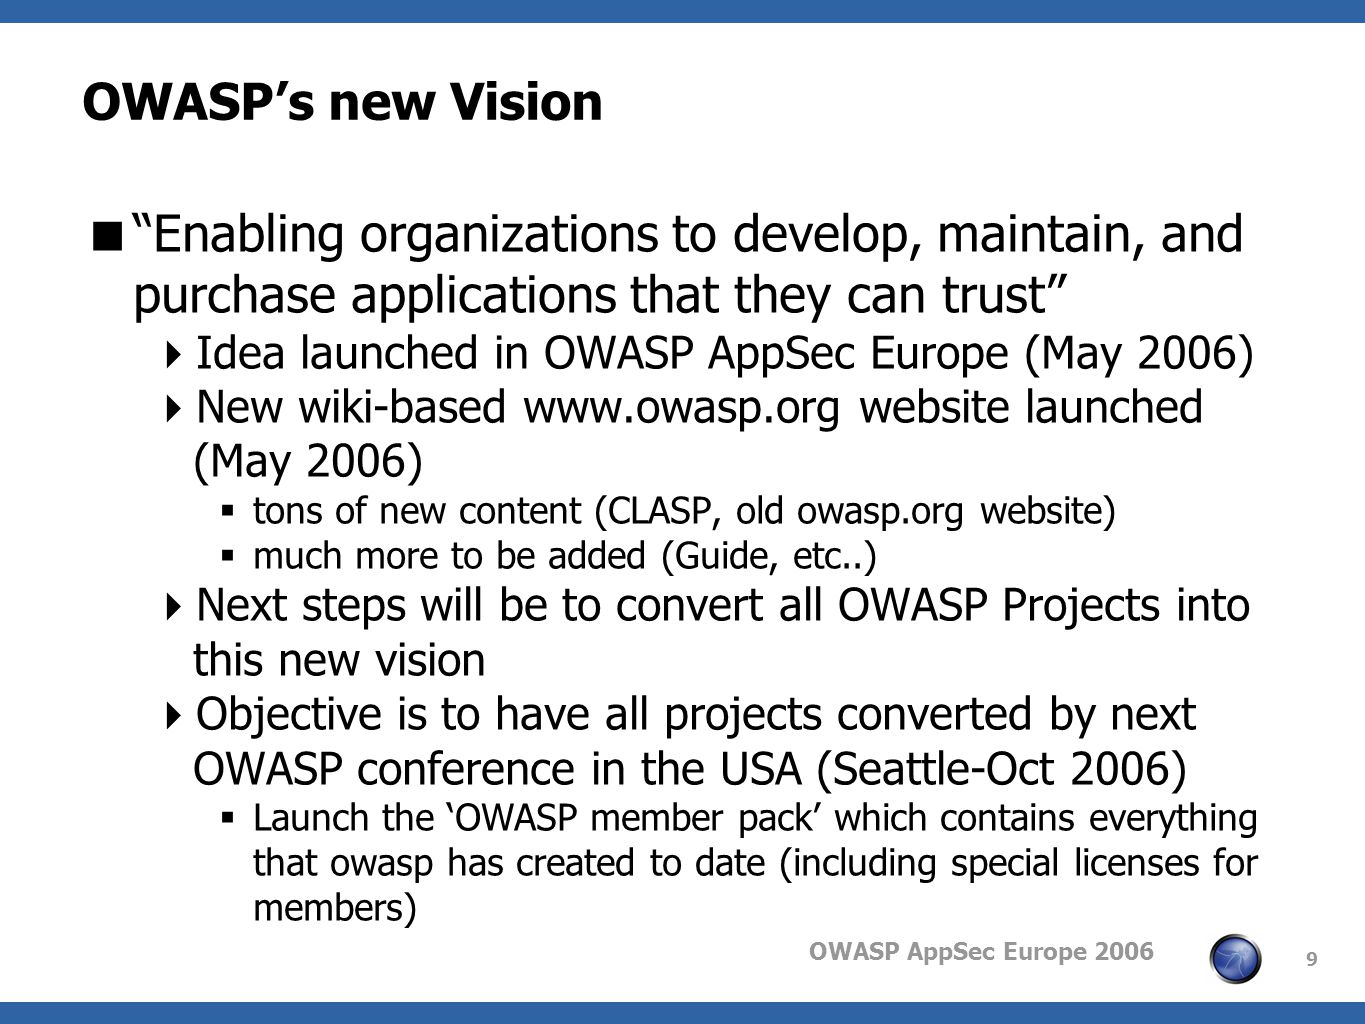 OWASP AppSec Europe 2006 9 OWASPs new Vision Enabling organizations to develop, maintain, and purchase applications that they can trust Idea launched